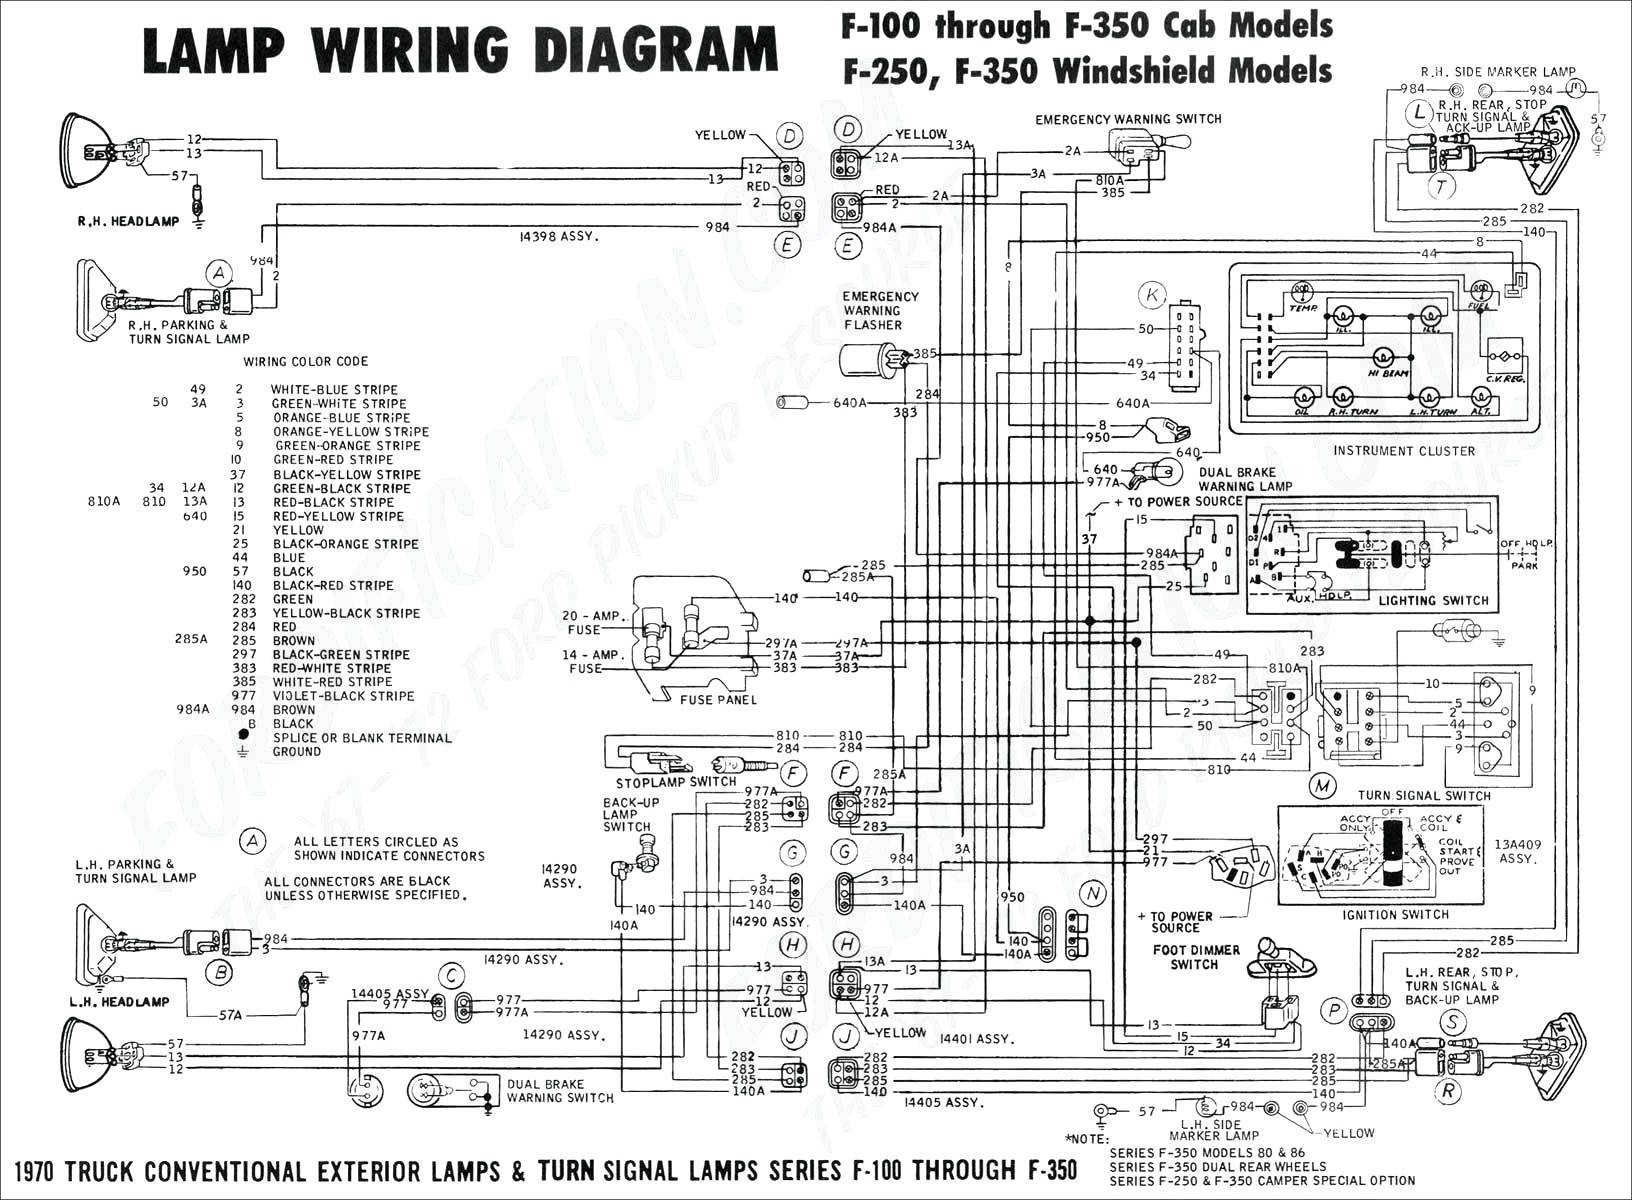 1991 cougar wiring diagram electrical wiring diagram guide 96 Mercury Cougar Engine Diagrams